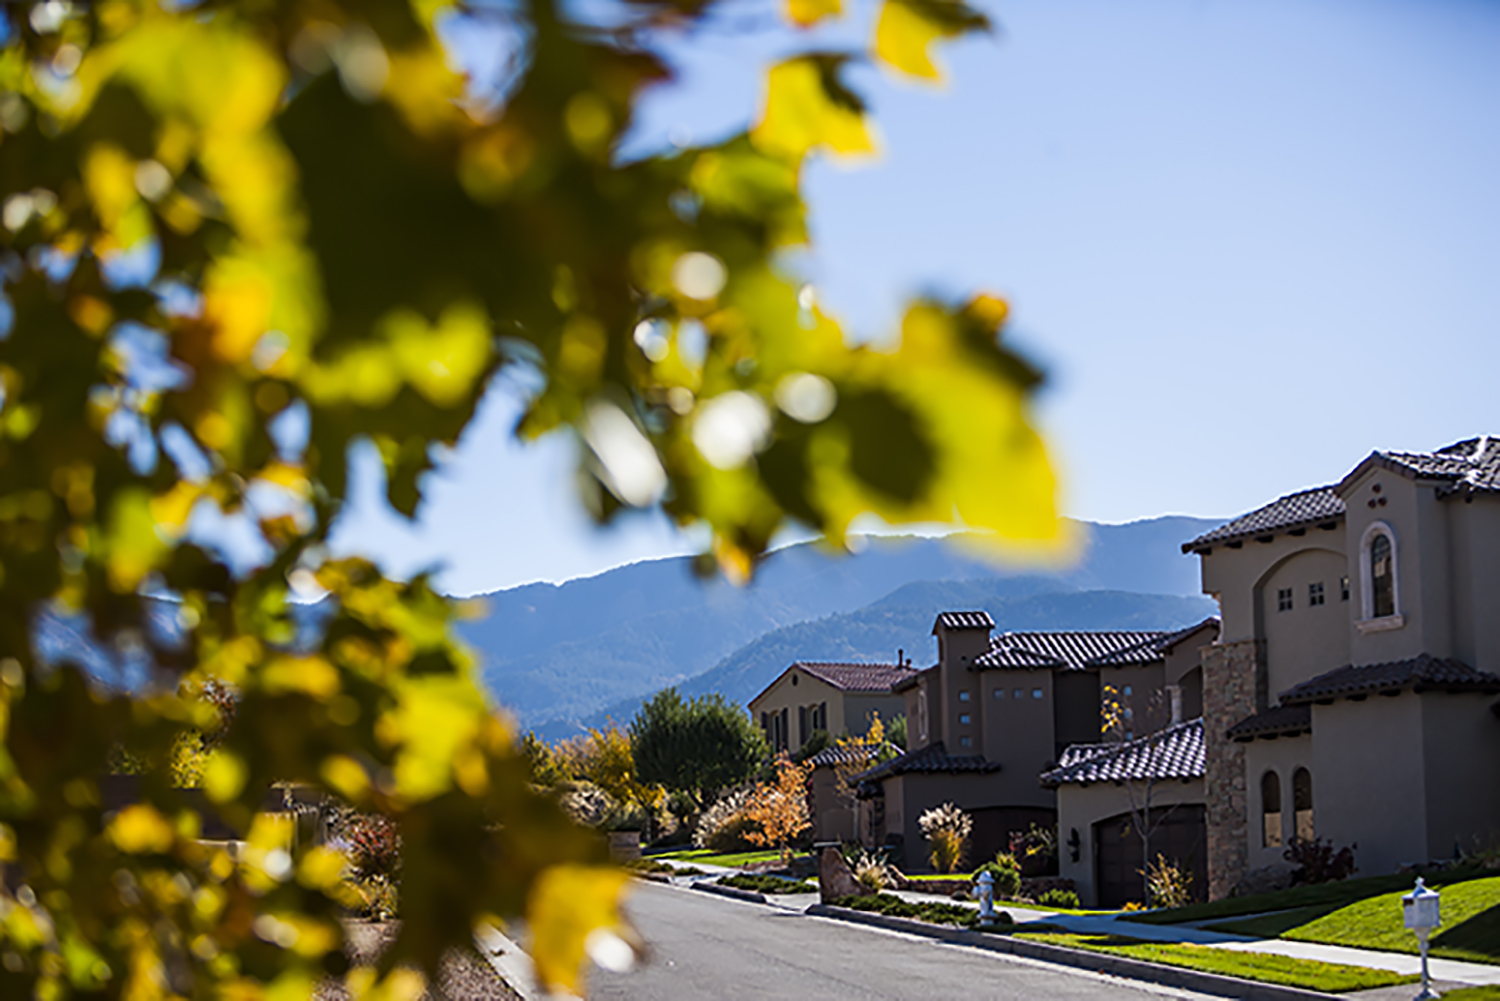 A photo of an Albuquerque neighborhood street with a tree in the foreground.